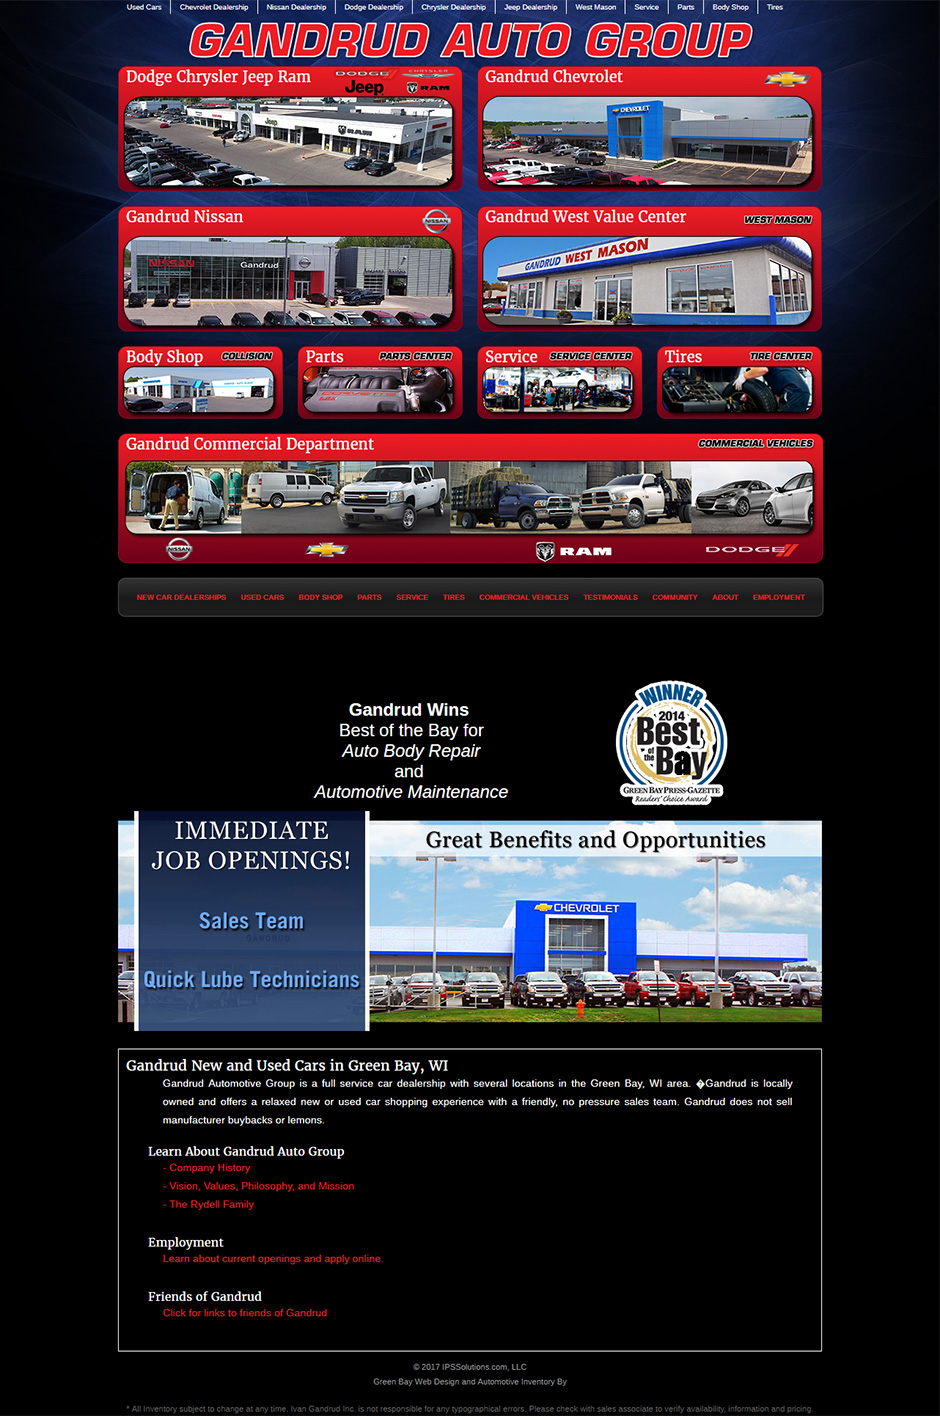 Gandrud Automotive Group and Green Bay Web Design Portfolio